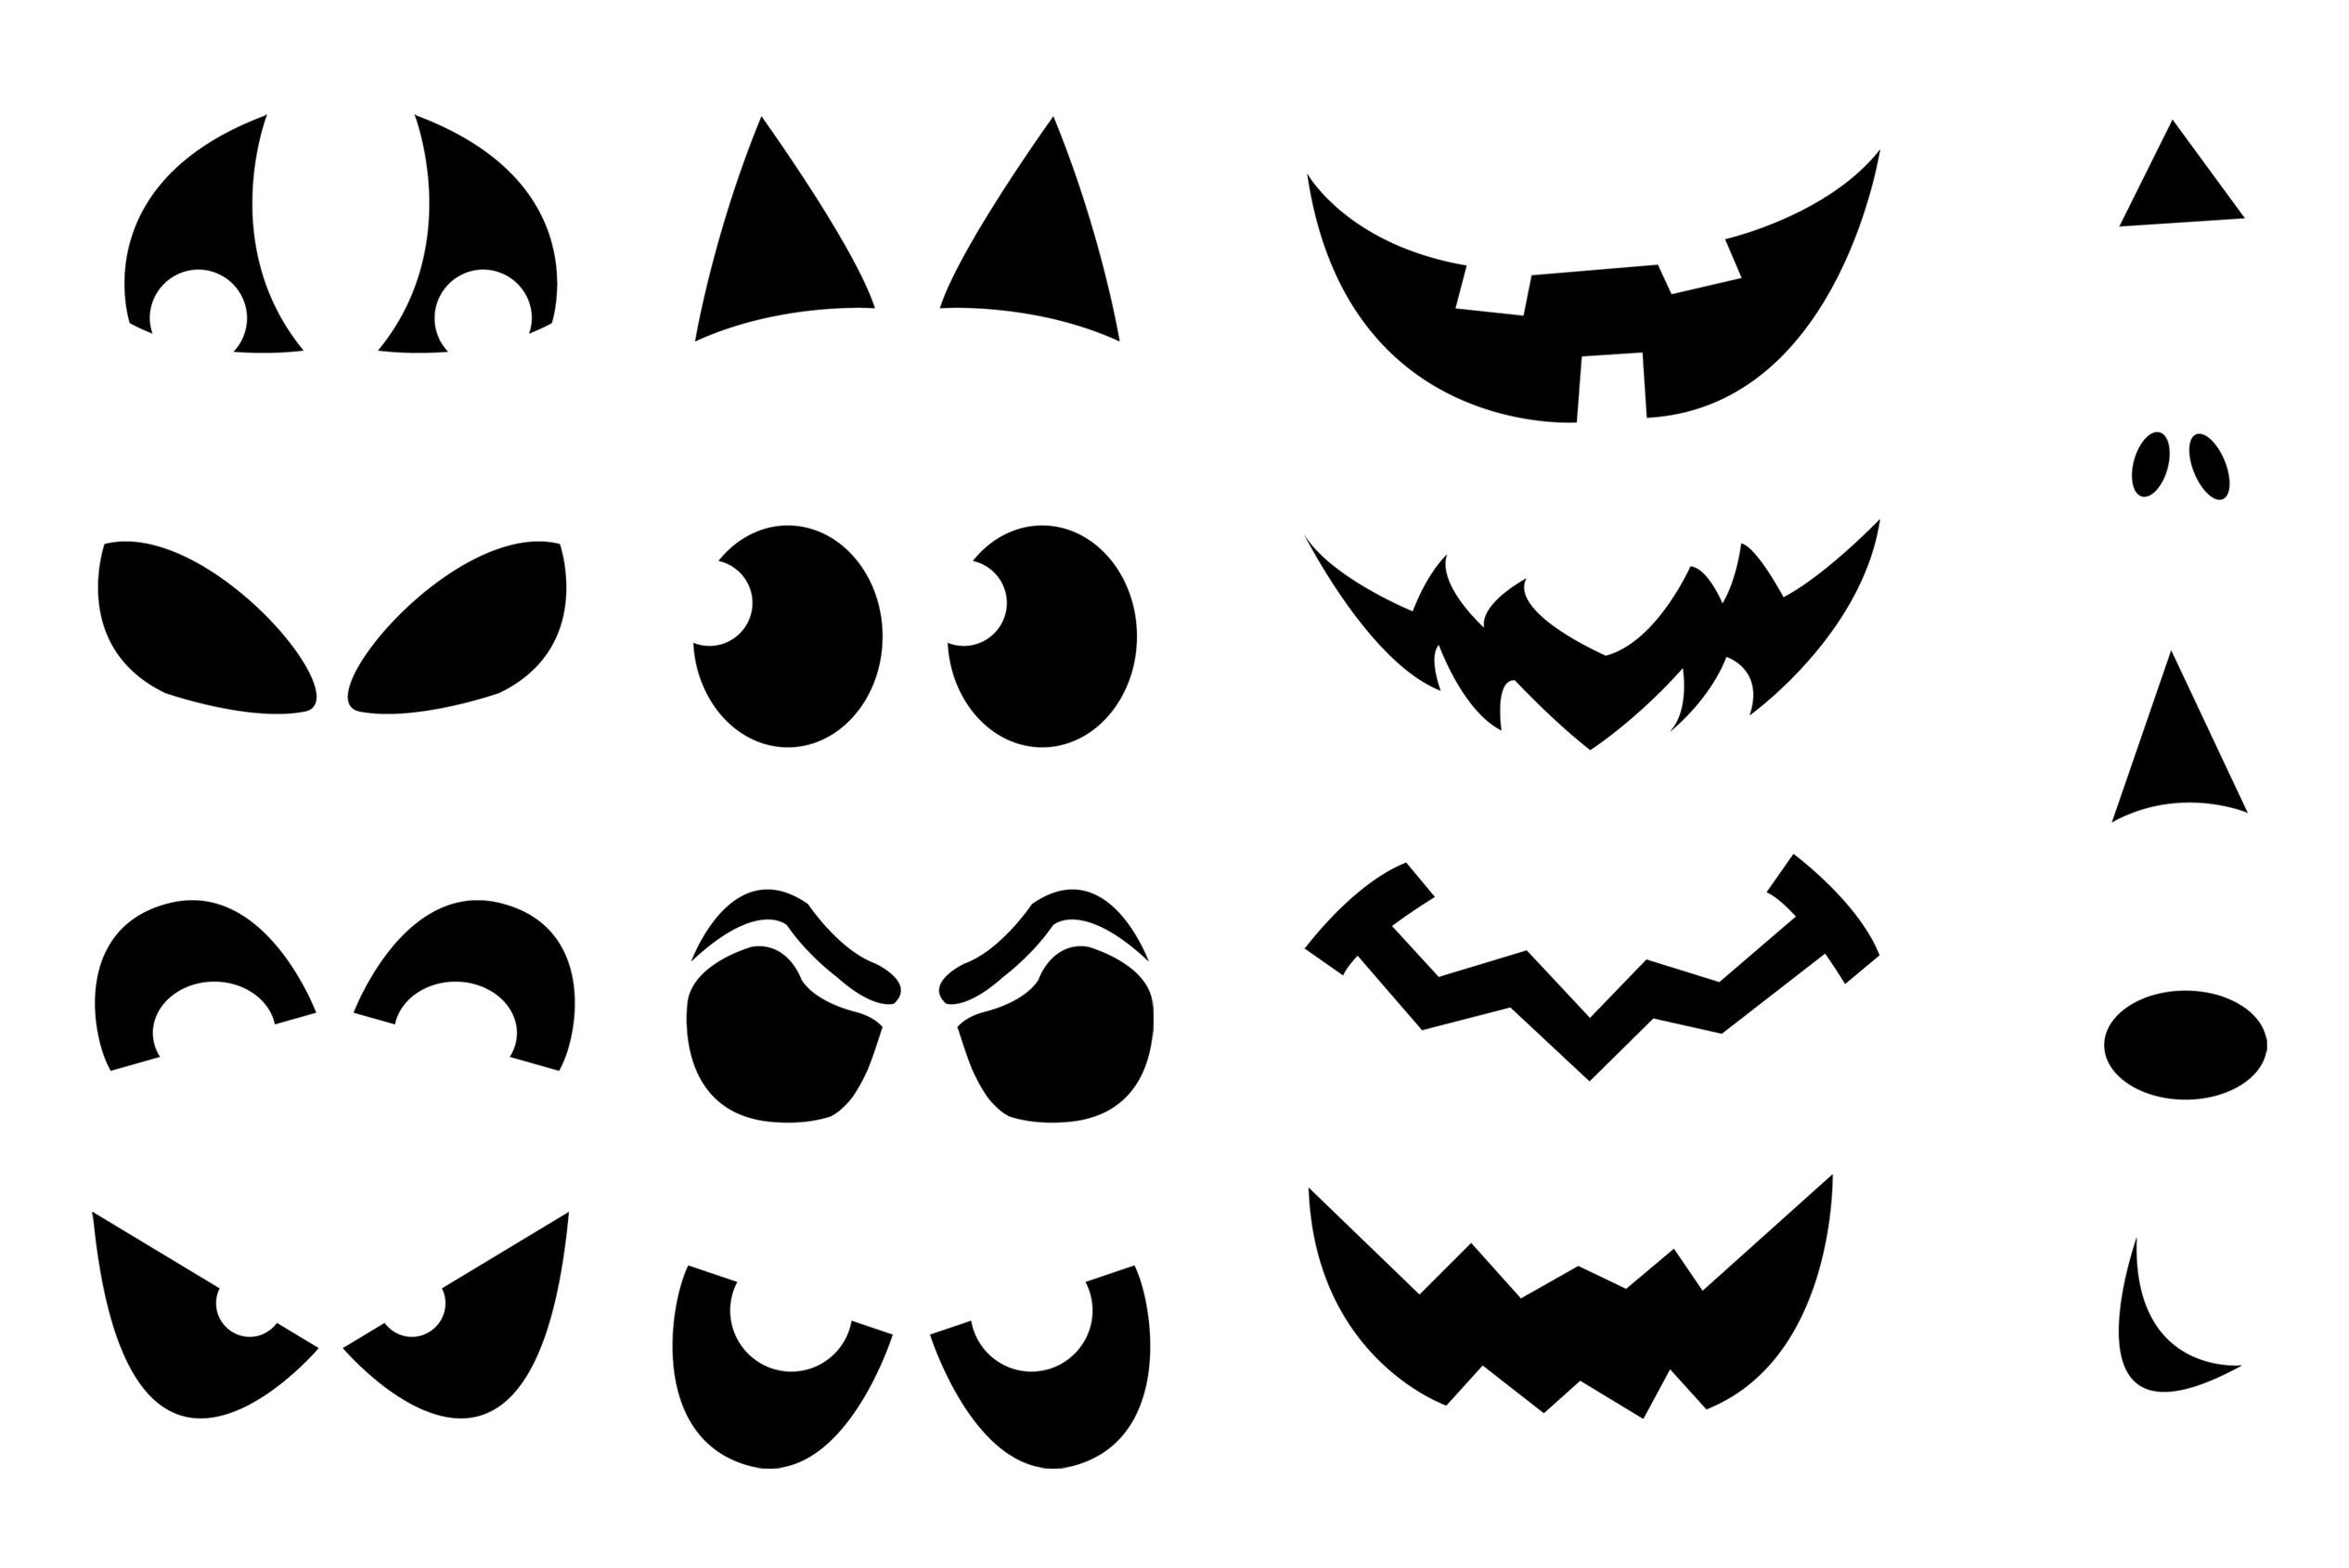 Pleasant Pumpkin Faces On Scary Carving Cool Shapes For Ghost Eye ...